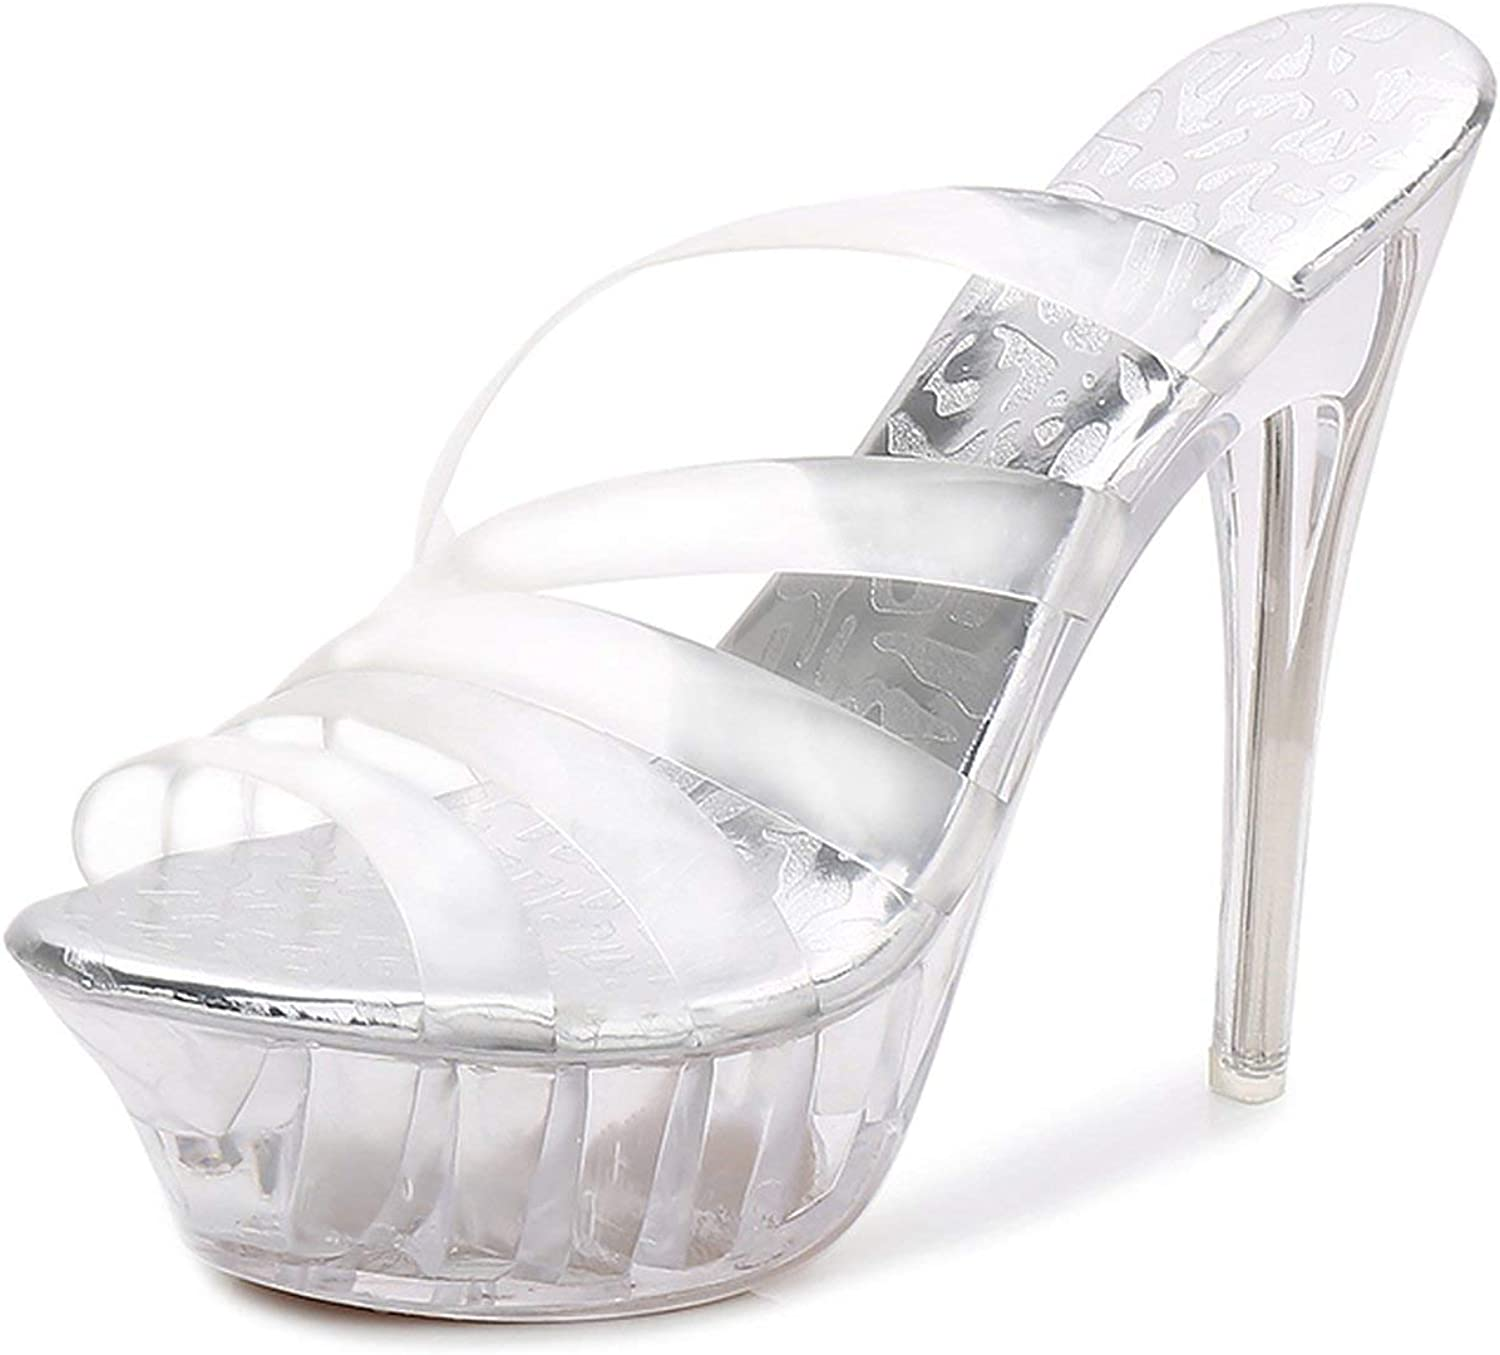 High Heels Womens Sandals Transparent Crystal Heel Model T Stage Sexy Lady Heeled shoes 35-43